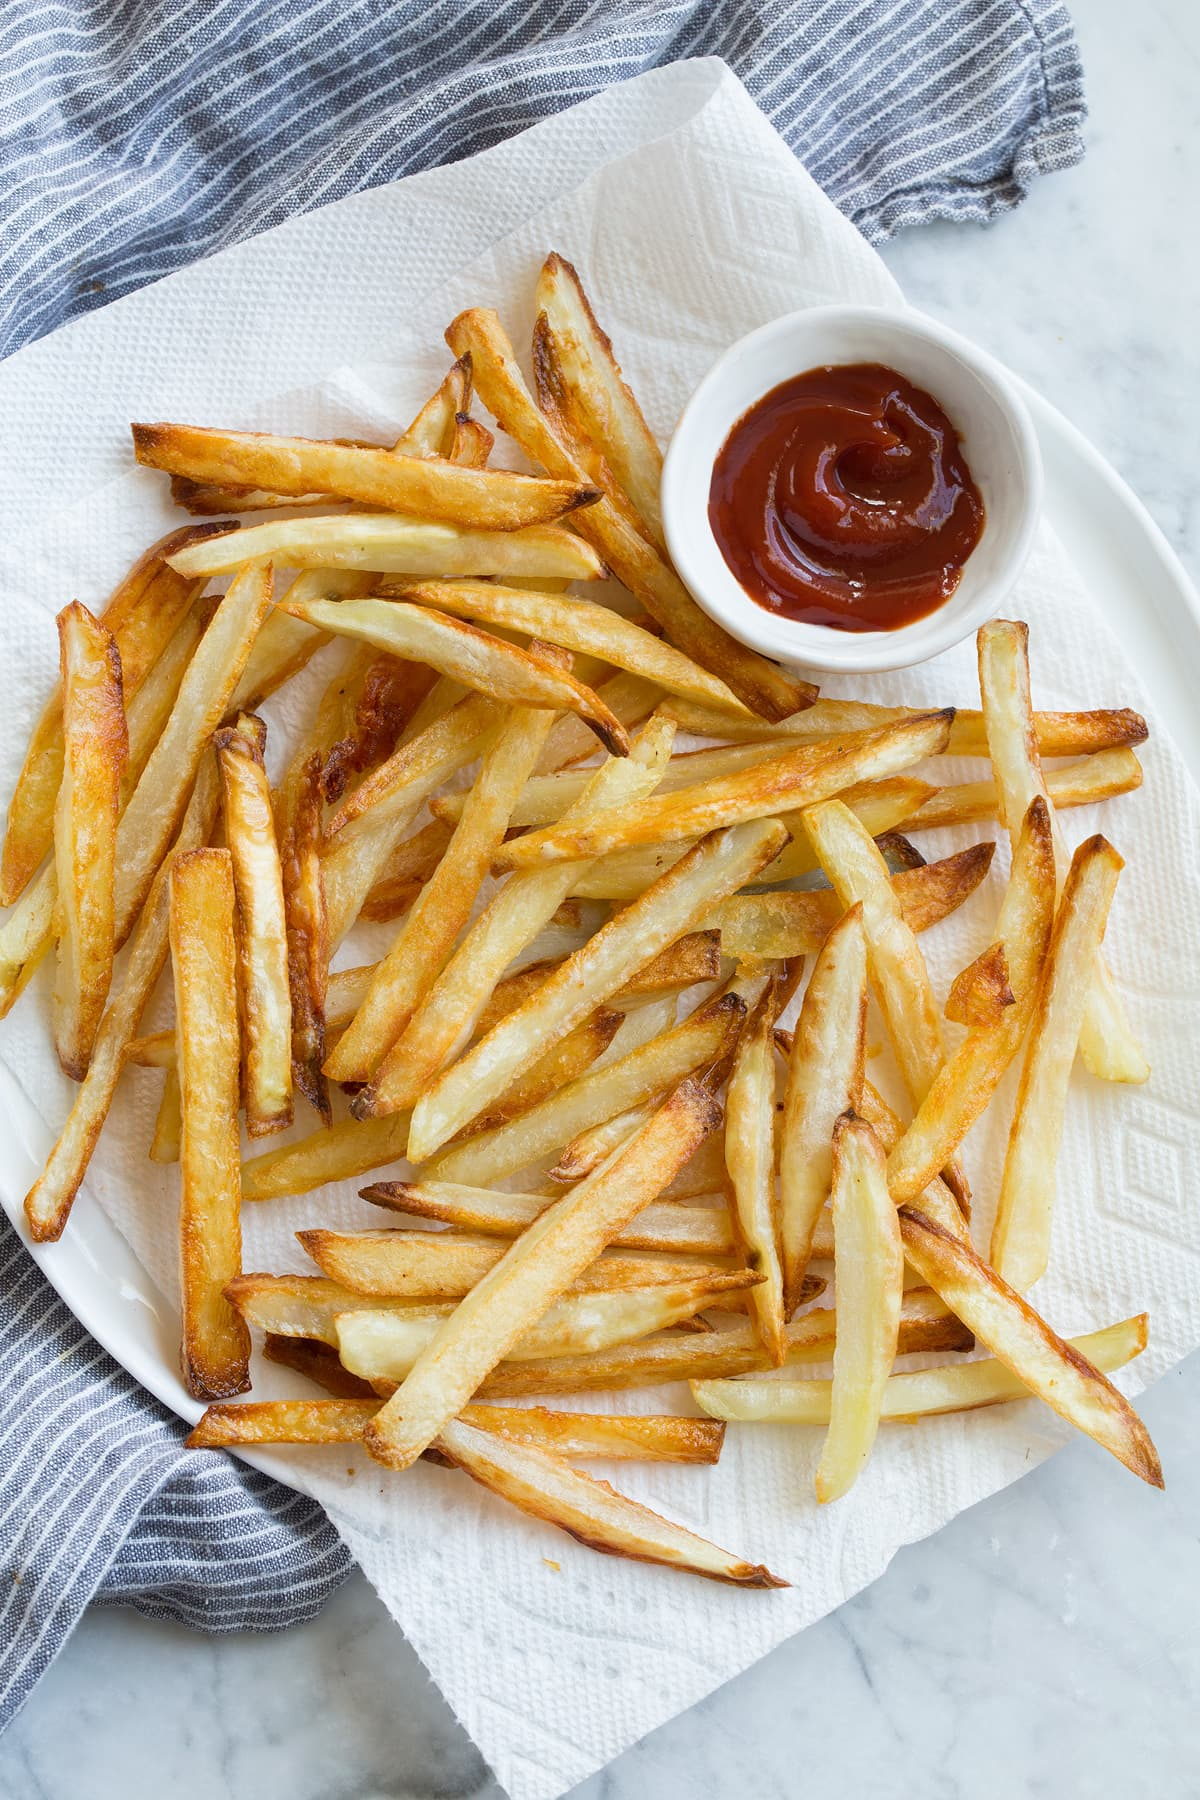 French Fries on a napkin lined plate with a side of ketchup.